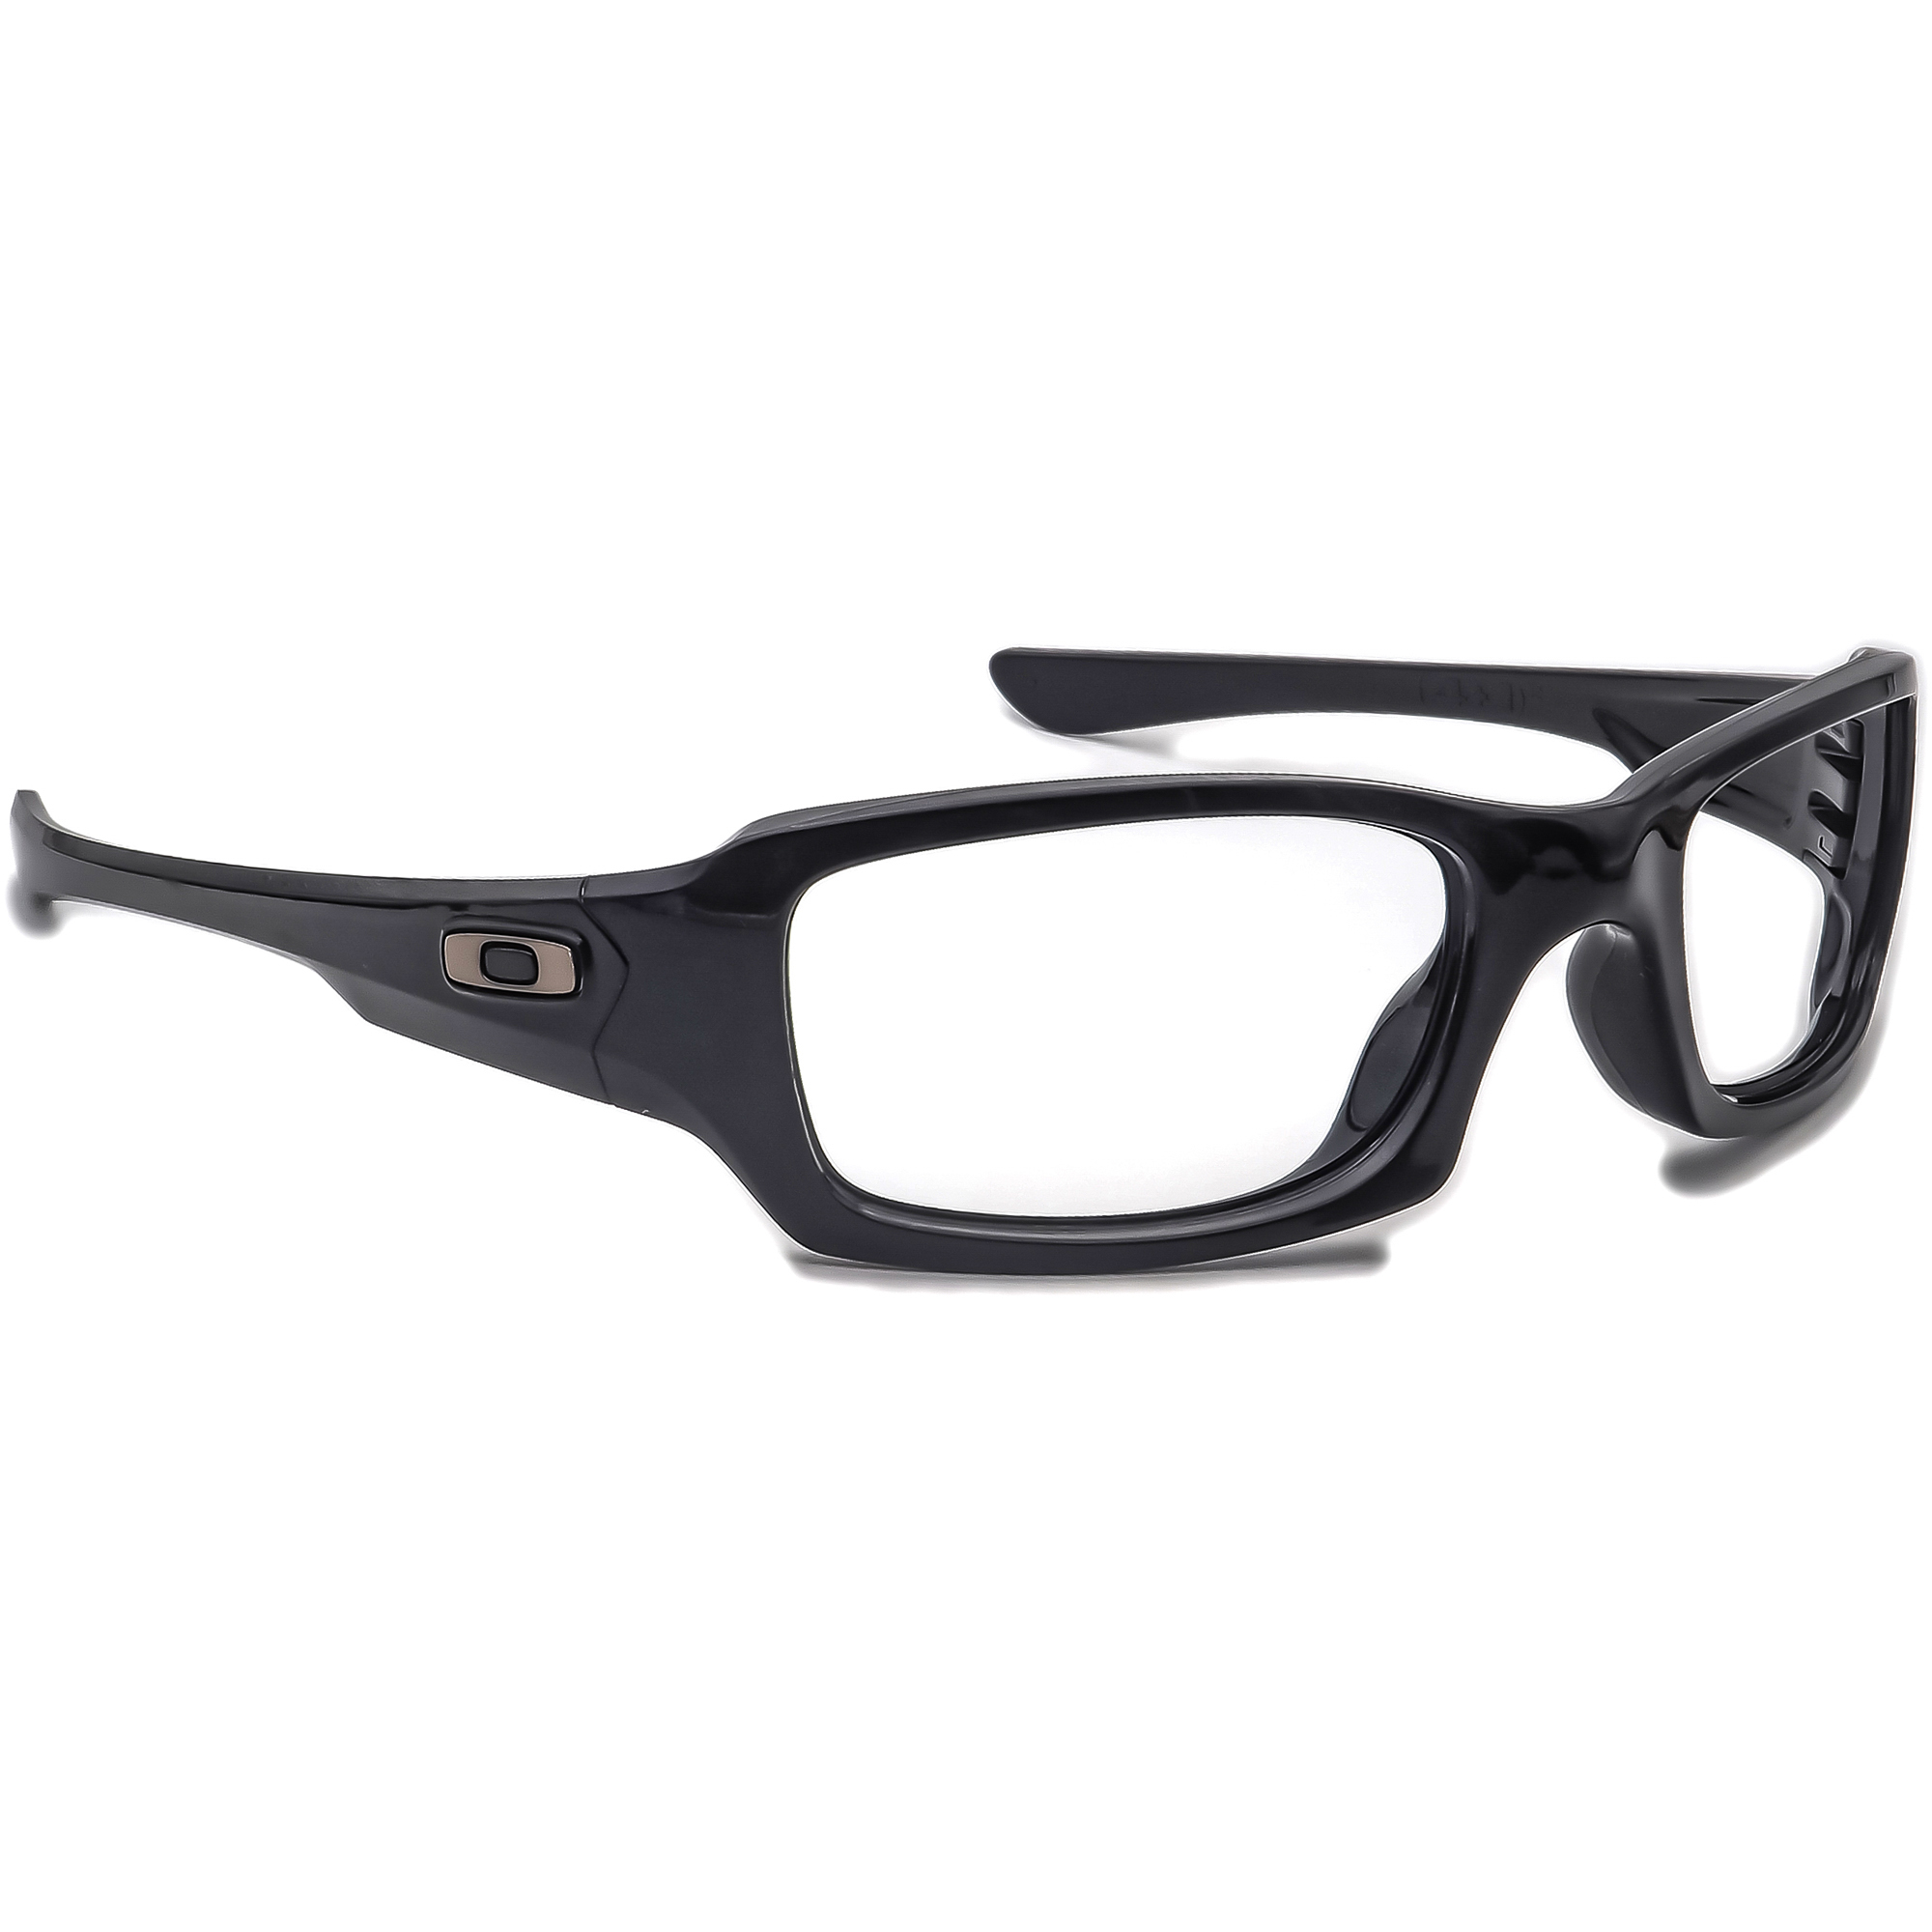 Oakley (4+1)^2 Sunglasses Frame Only